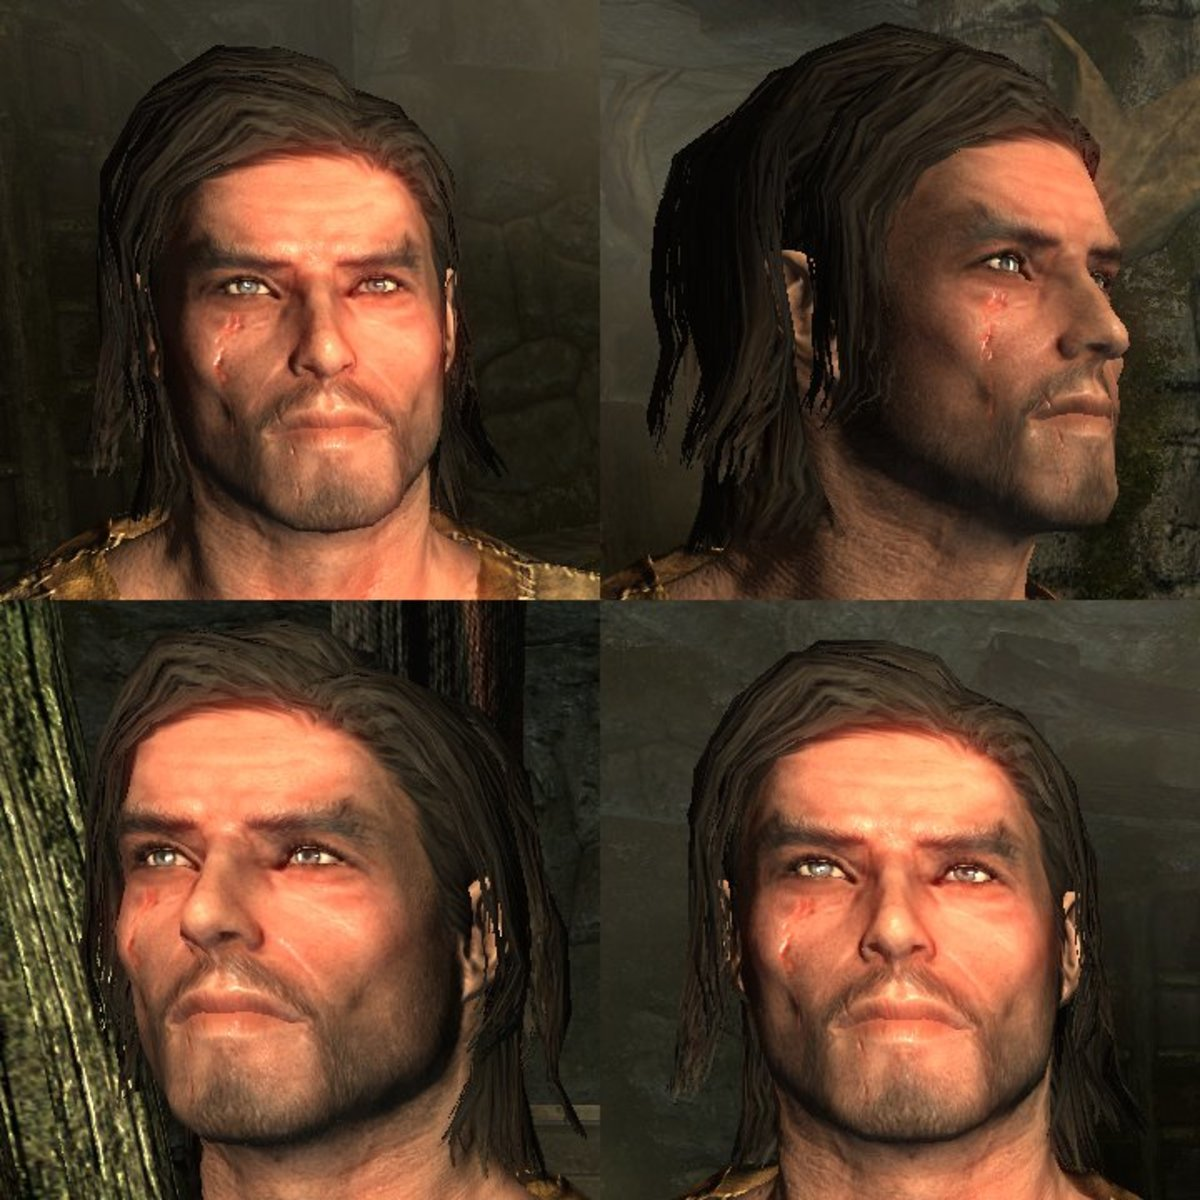 By request, another male character! This is my current 'Skryim' character, Loric. I'm using him for a 'vanilla' playthrough with the Stormcloaks and Companions. You can find the slider settings for Loric and other characters on my website.